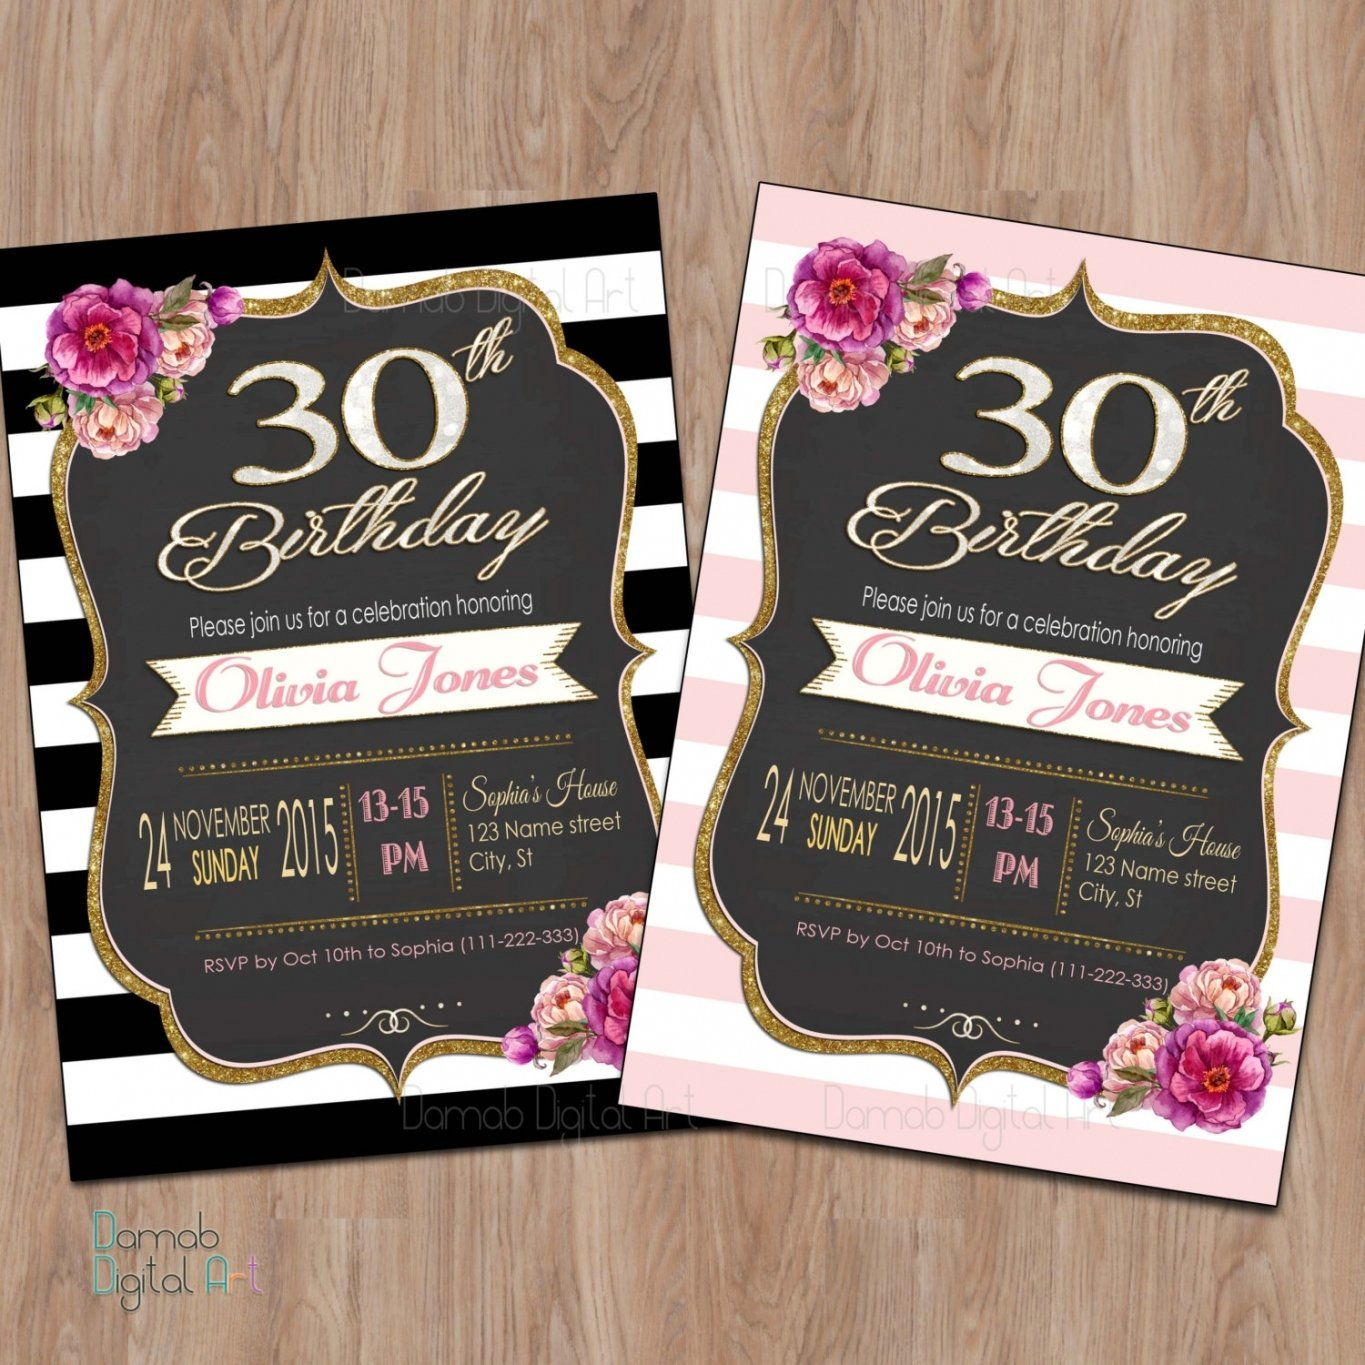 10 Wonderful 30Th Birthday Party Ideas For Her Tips To Create 30th Invitations